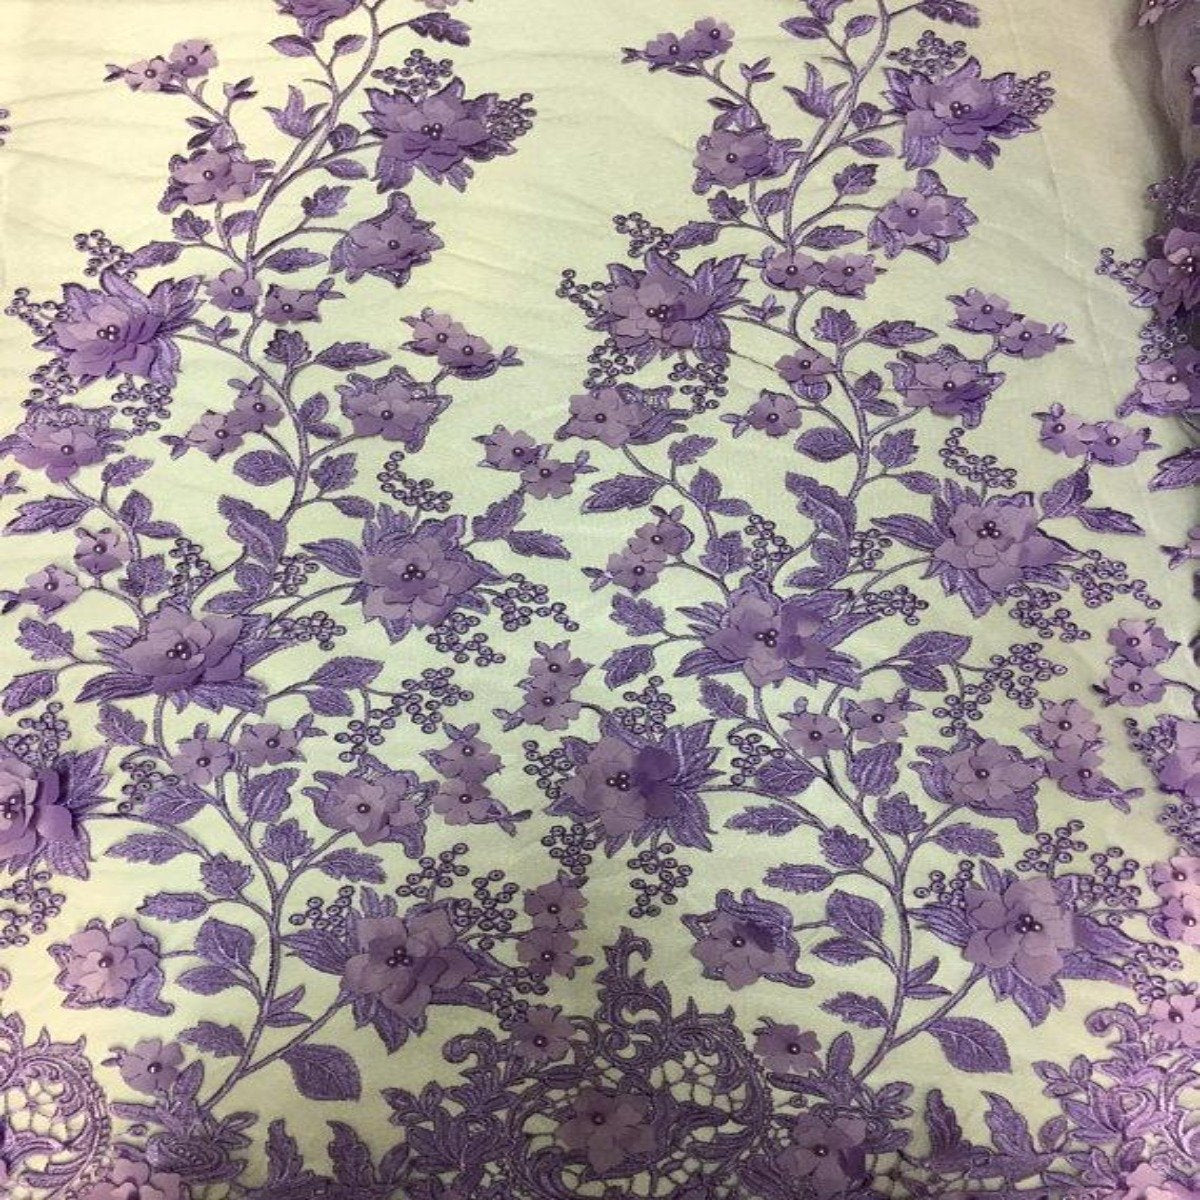 Lavender 3D Embroidered Satin Floral Pearl Lace Fabric - Fashion Fabrics Los Angeles